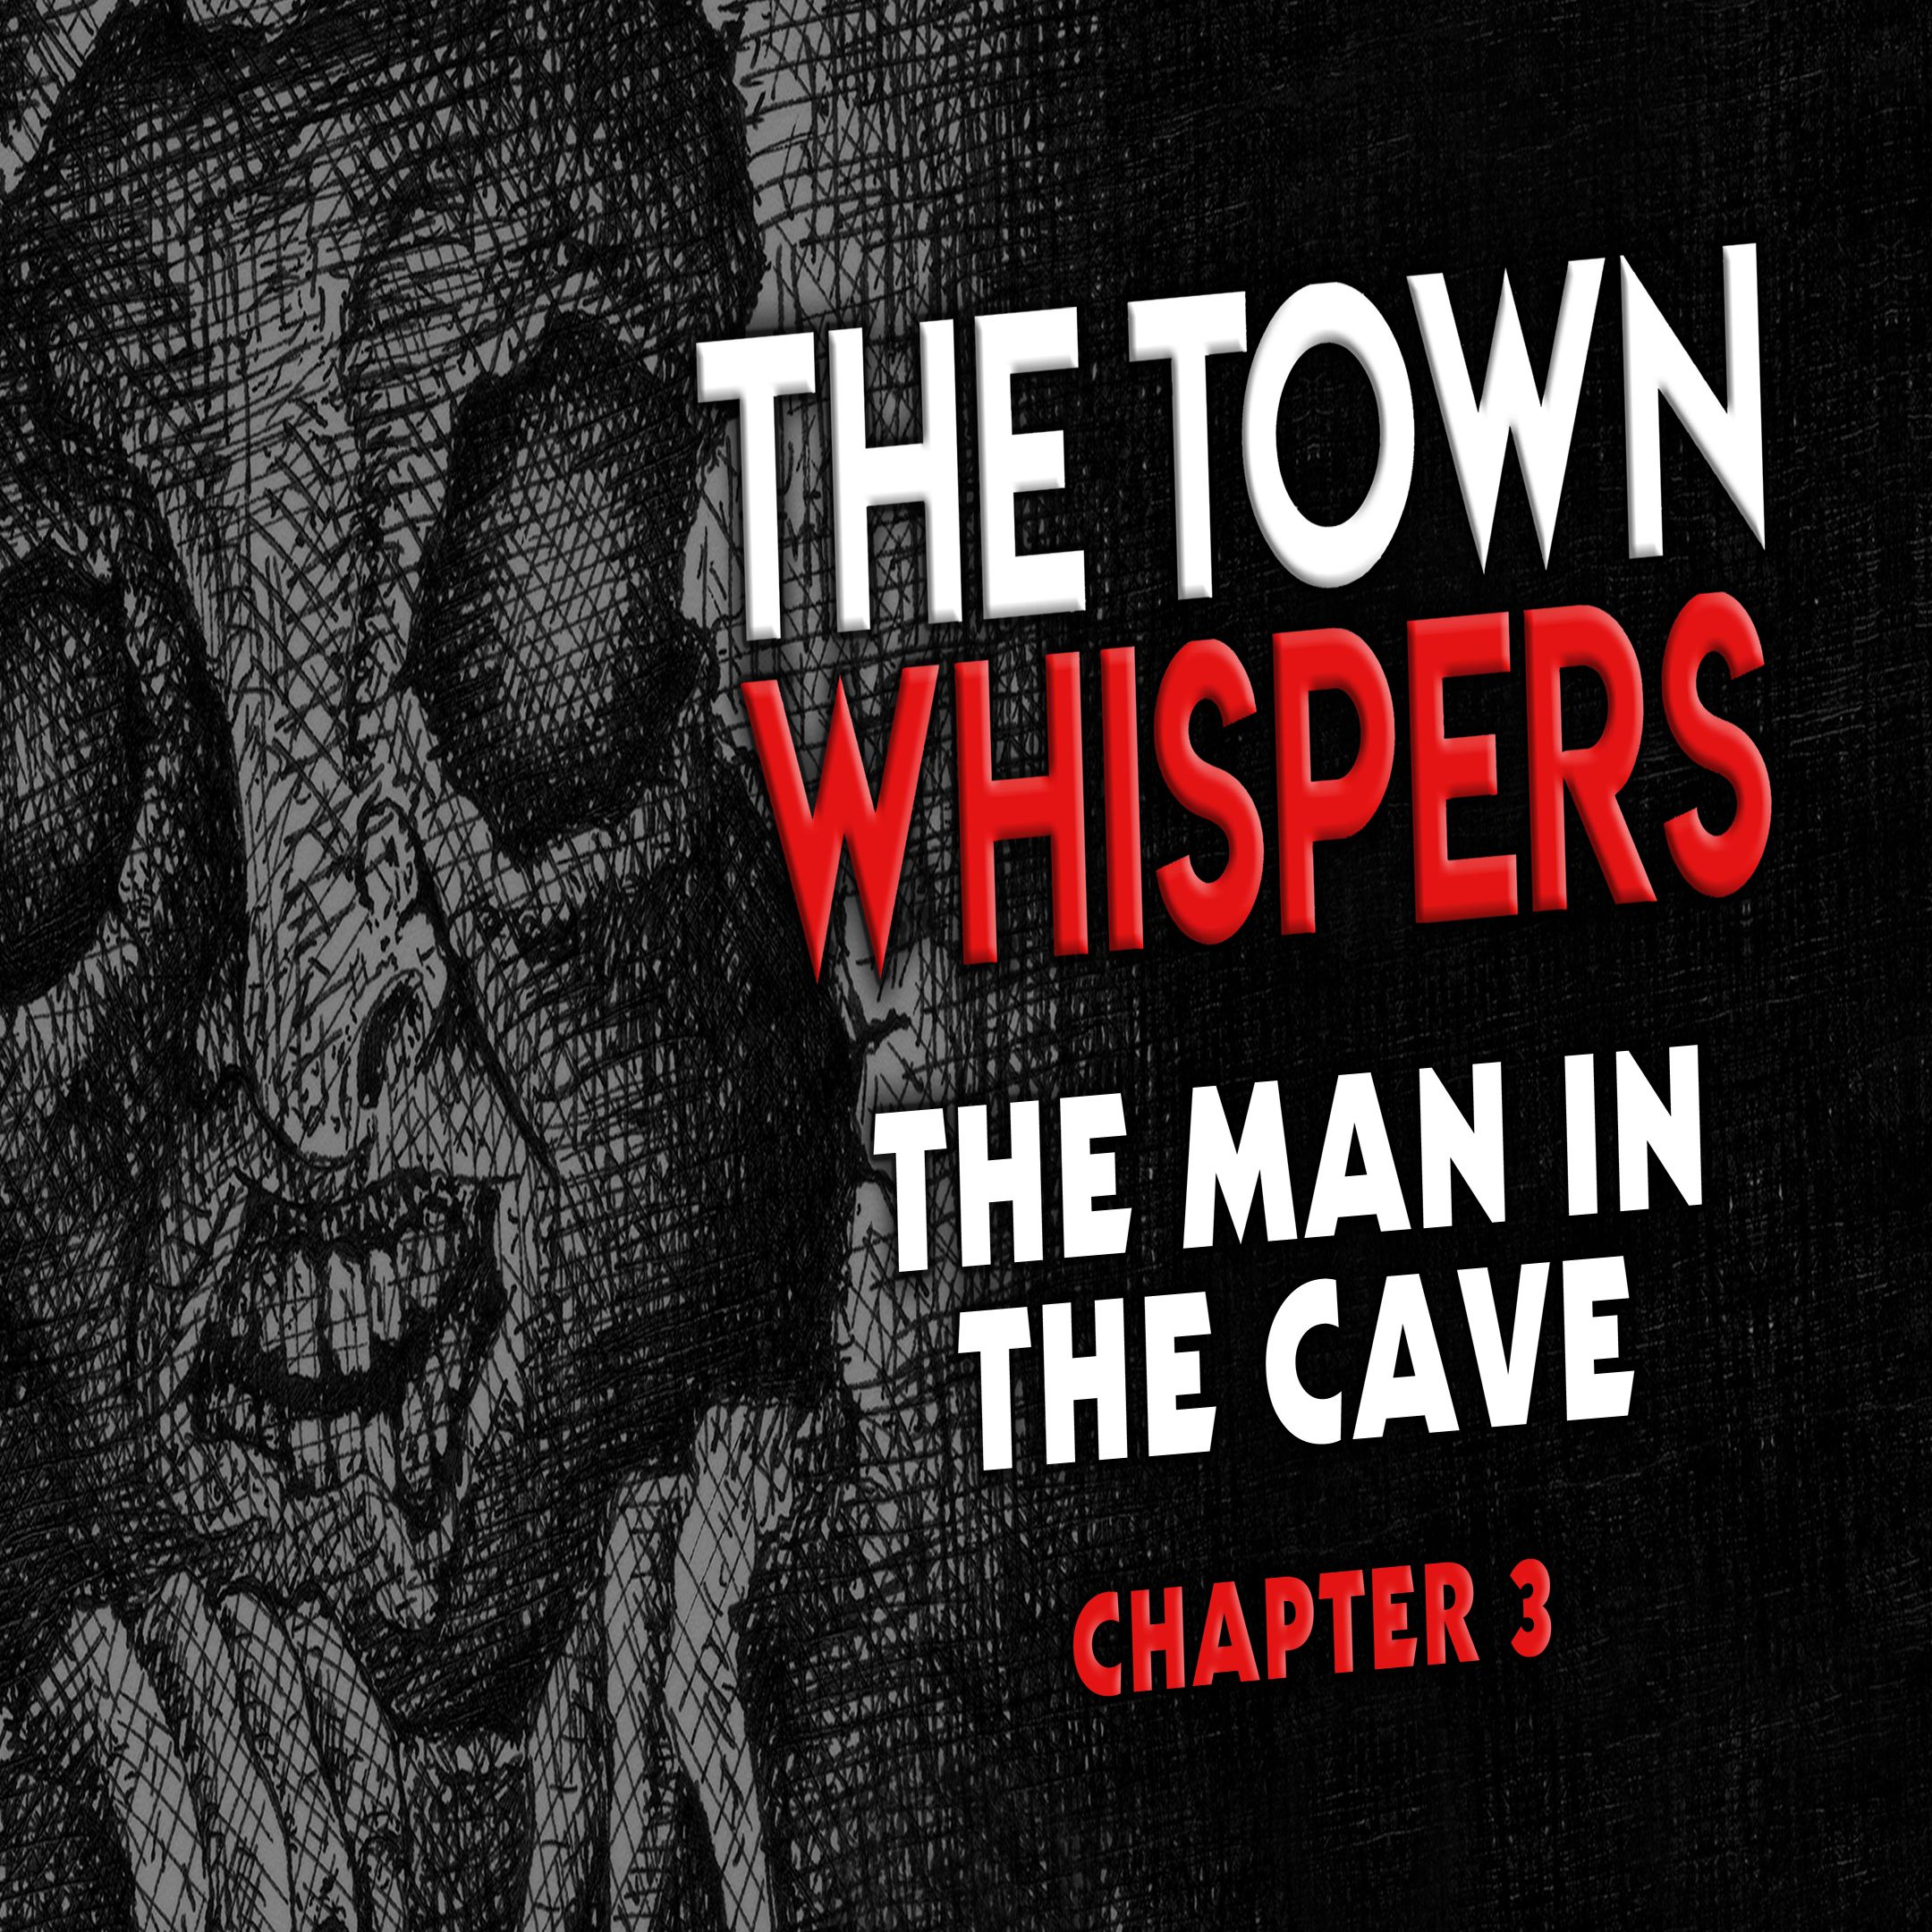 Chapter 3: The Man In The Cave